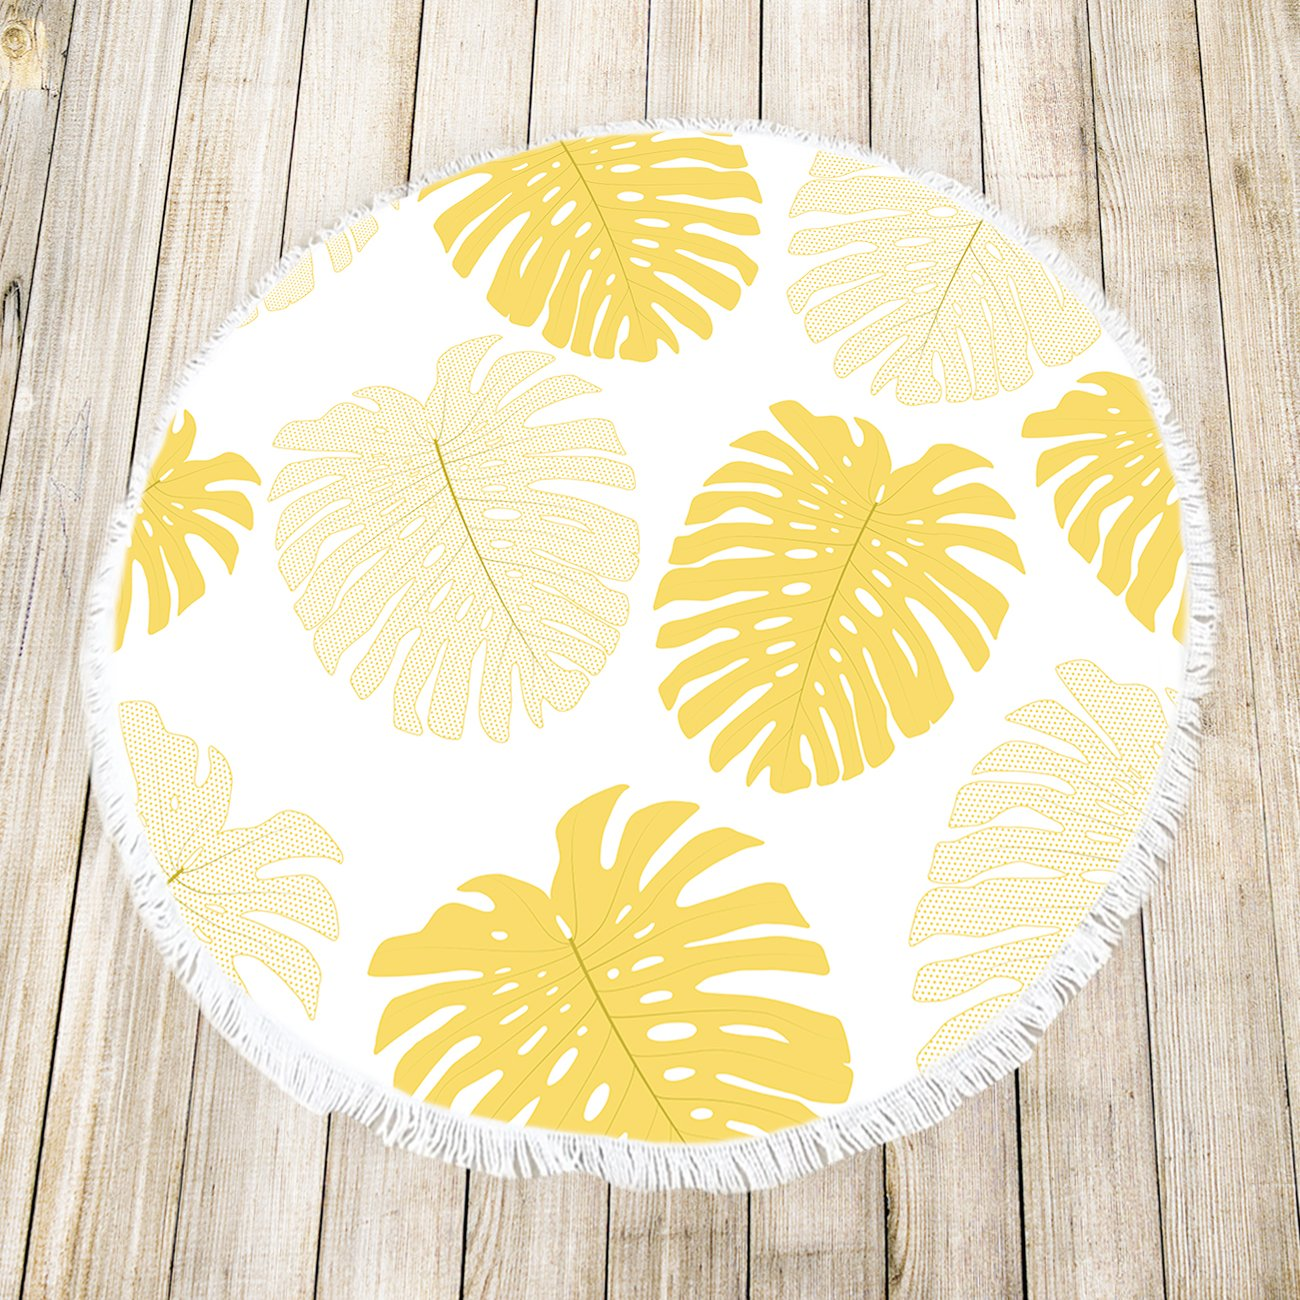 Amazon.com: Round Beach Towels Yellow Tropical Plants Fringed Circle Thick Gypsy Picnic Carpet Yoga Mat: Home & Kitchen